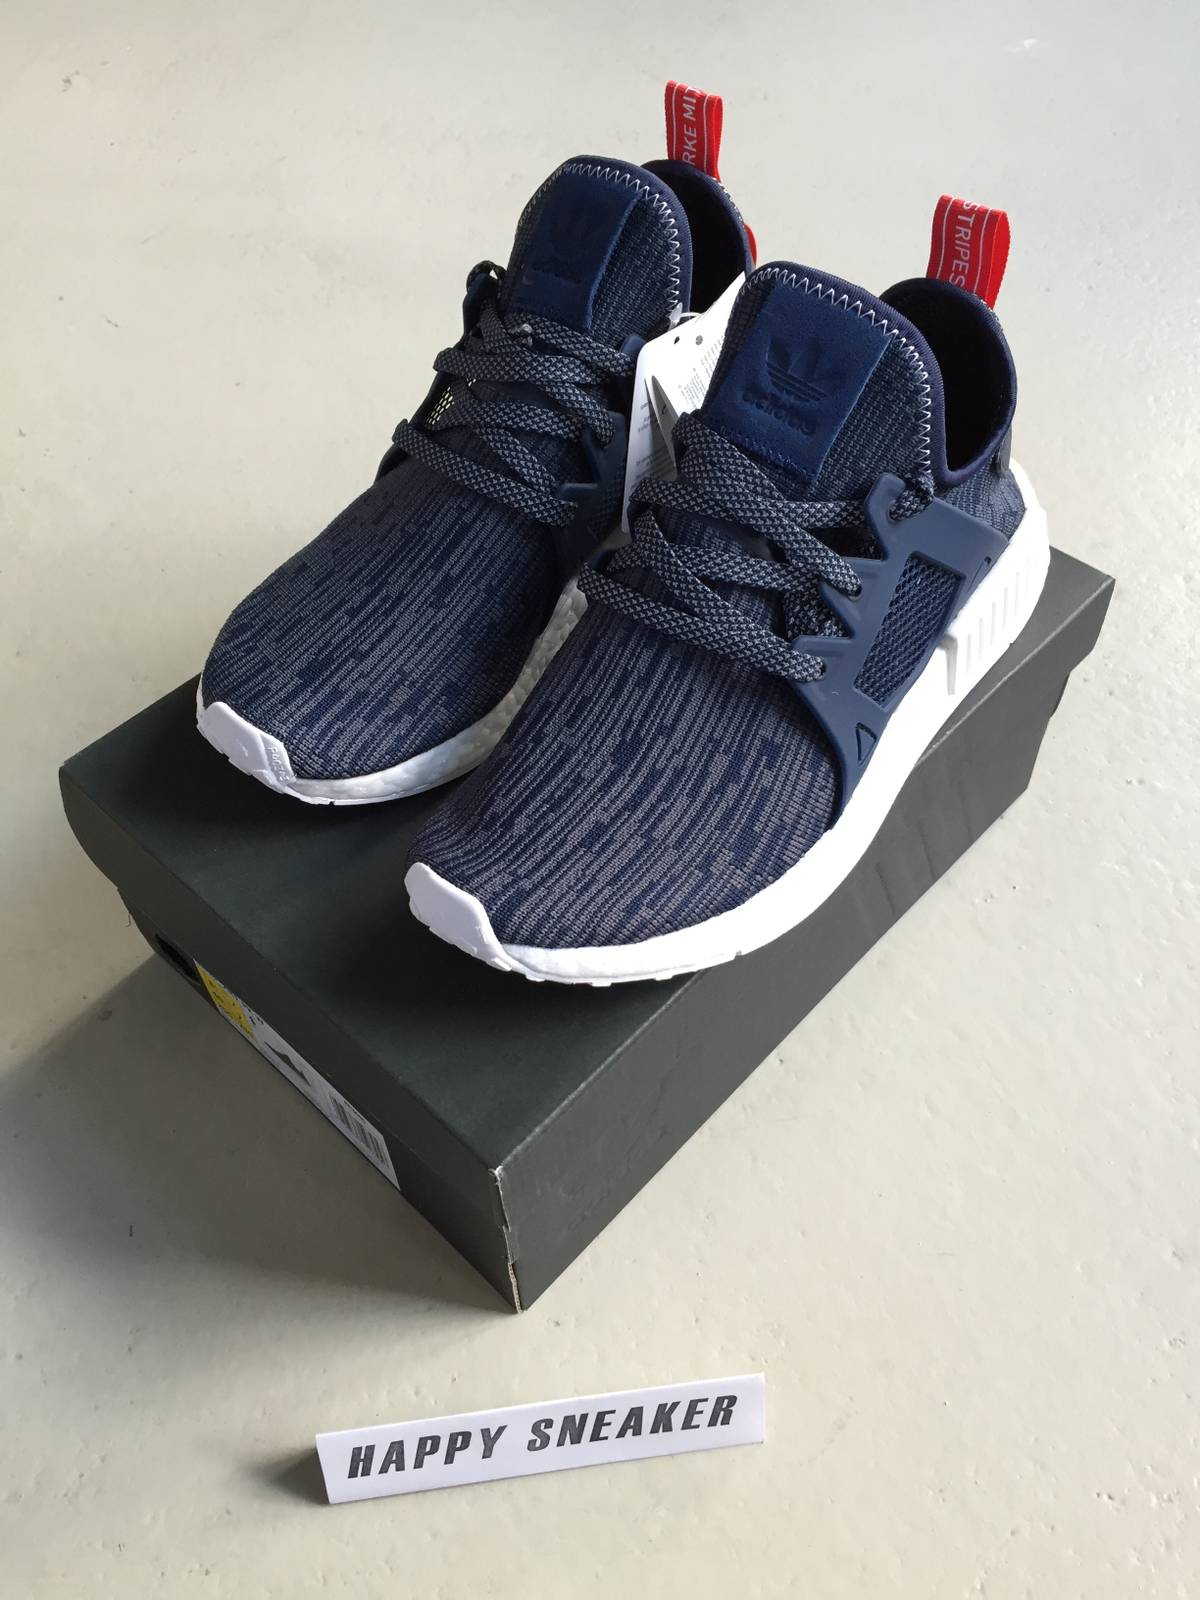 nmd xr1 pk us 7 s32218